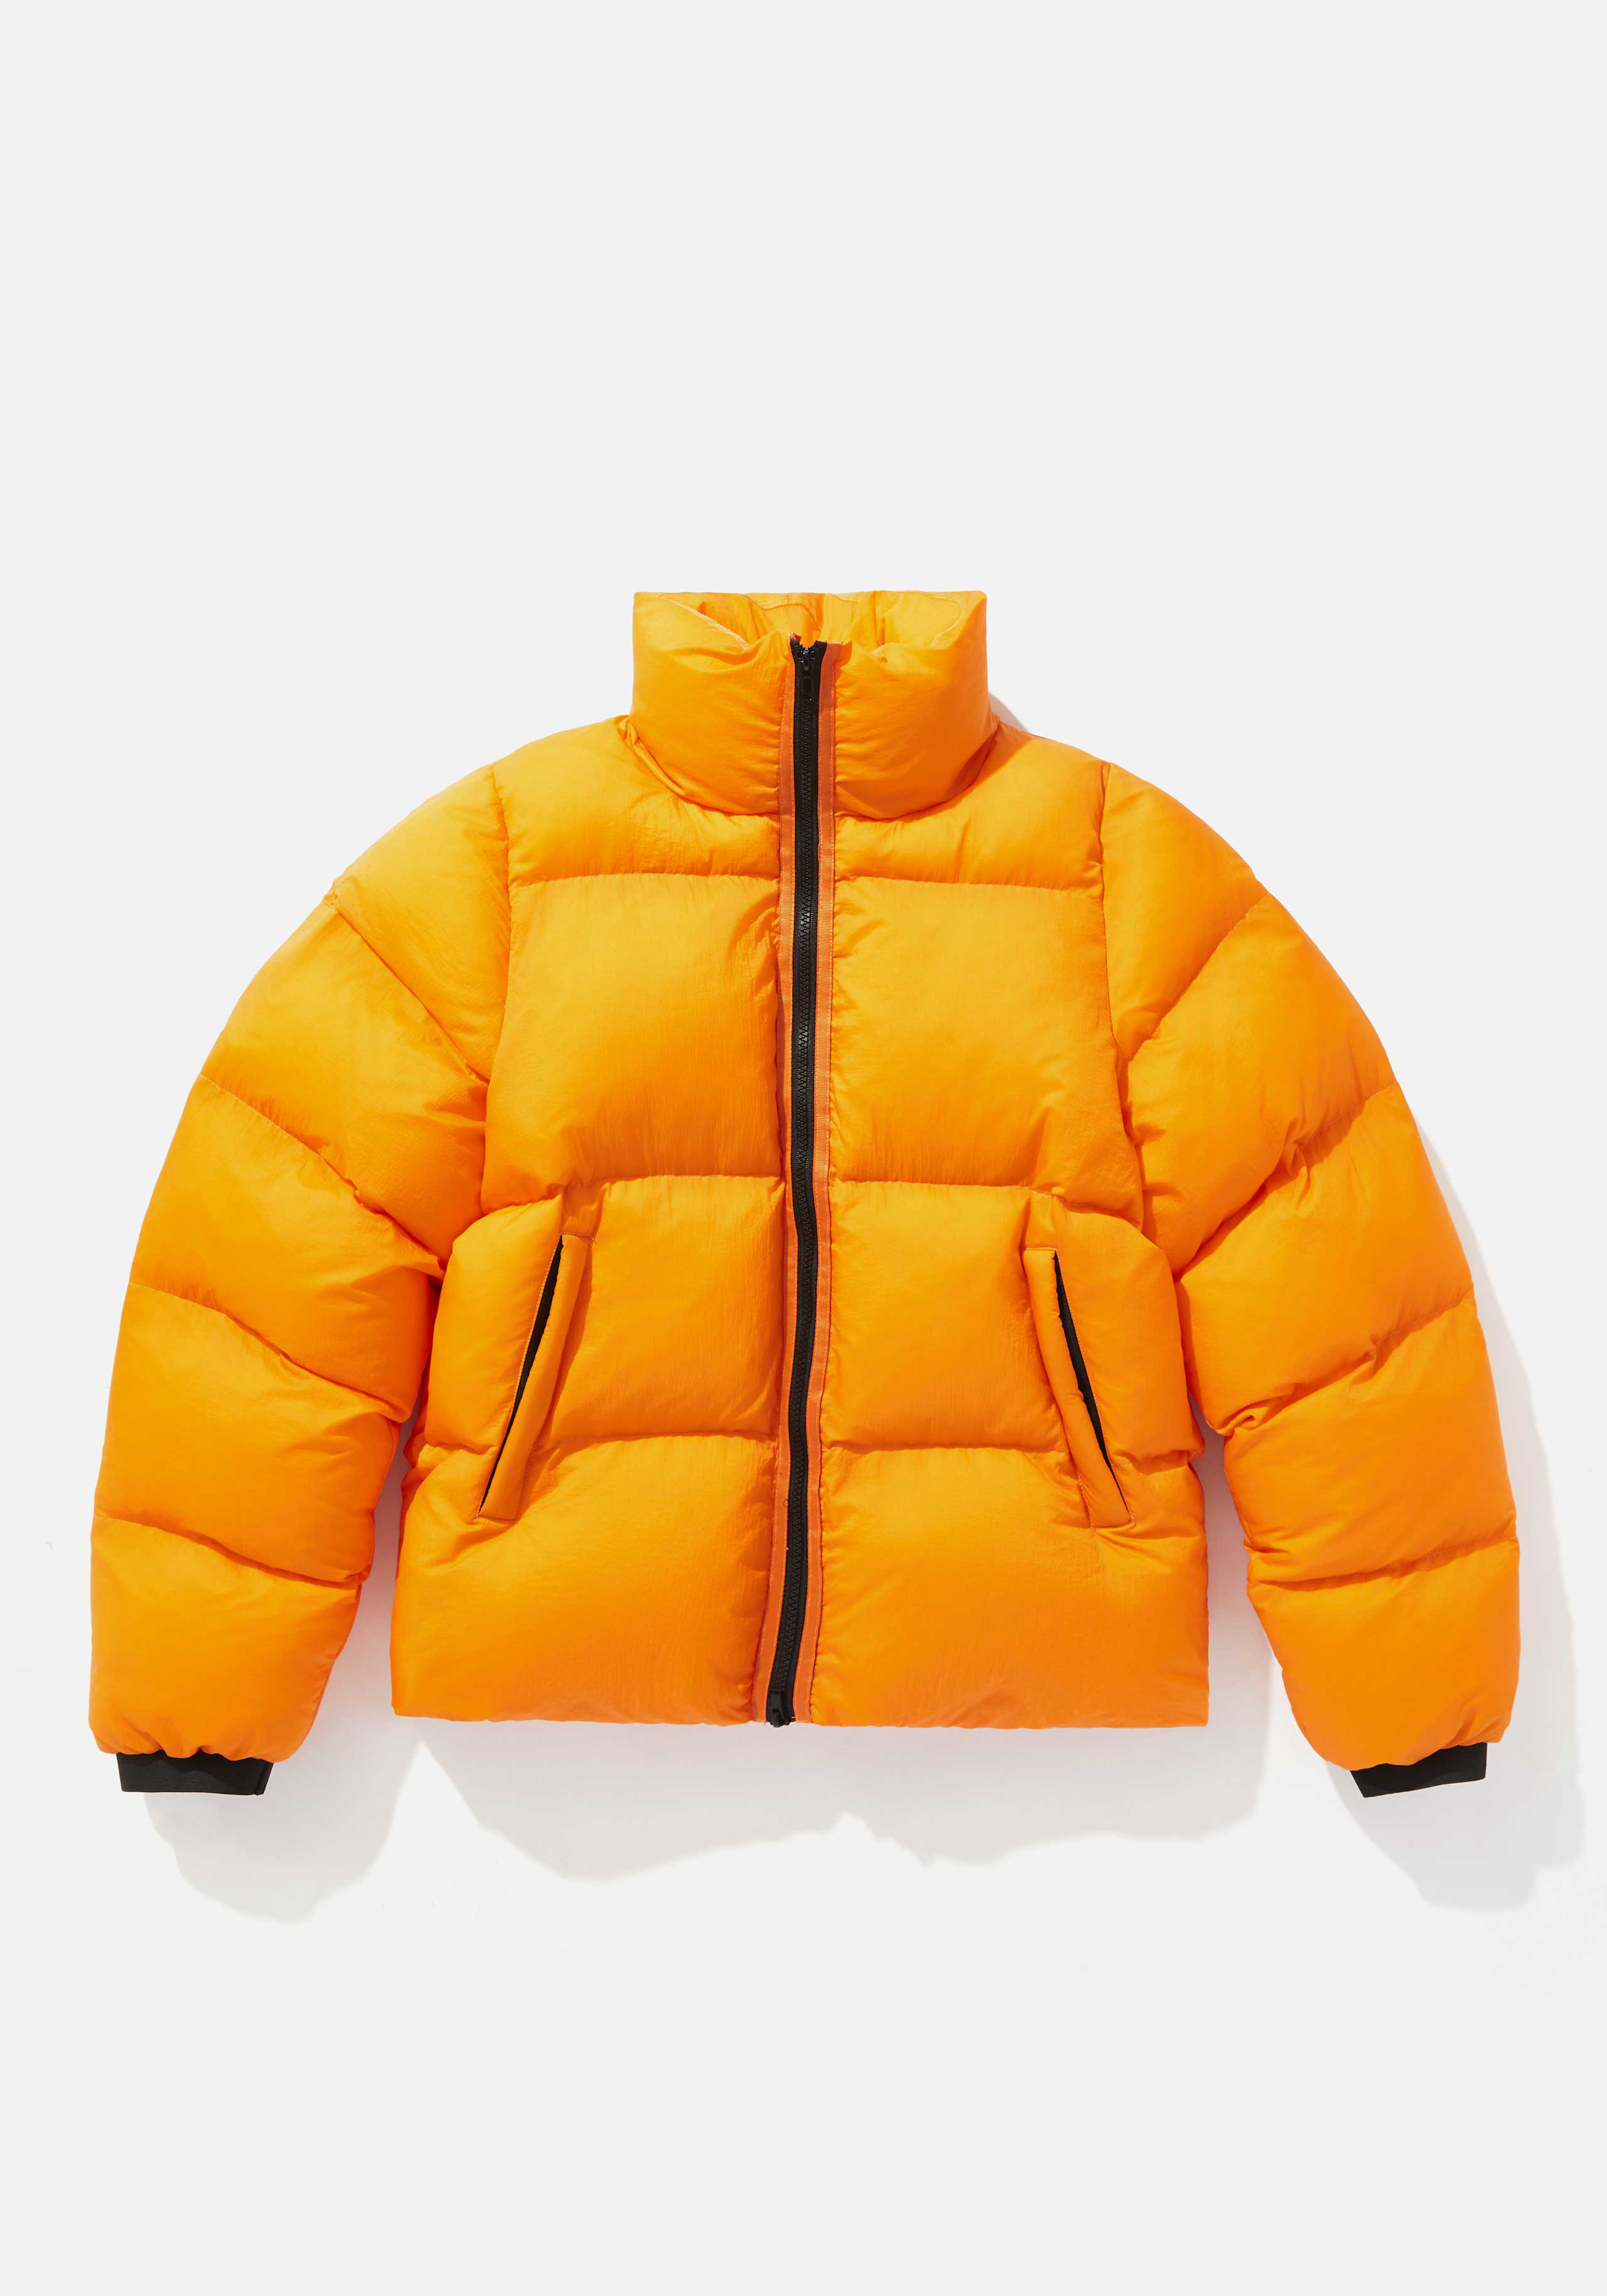 mki bubble jacket 1